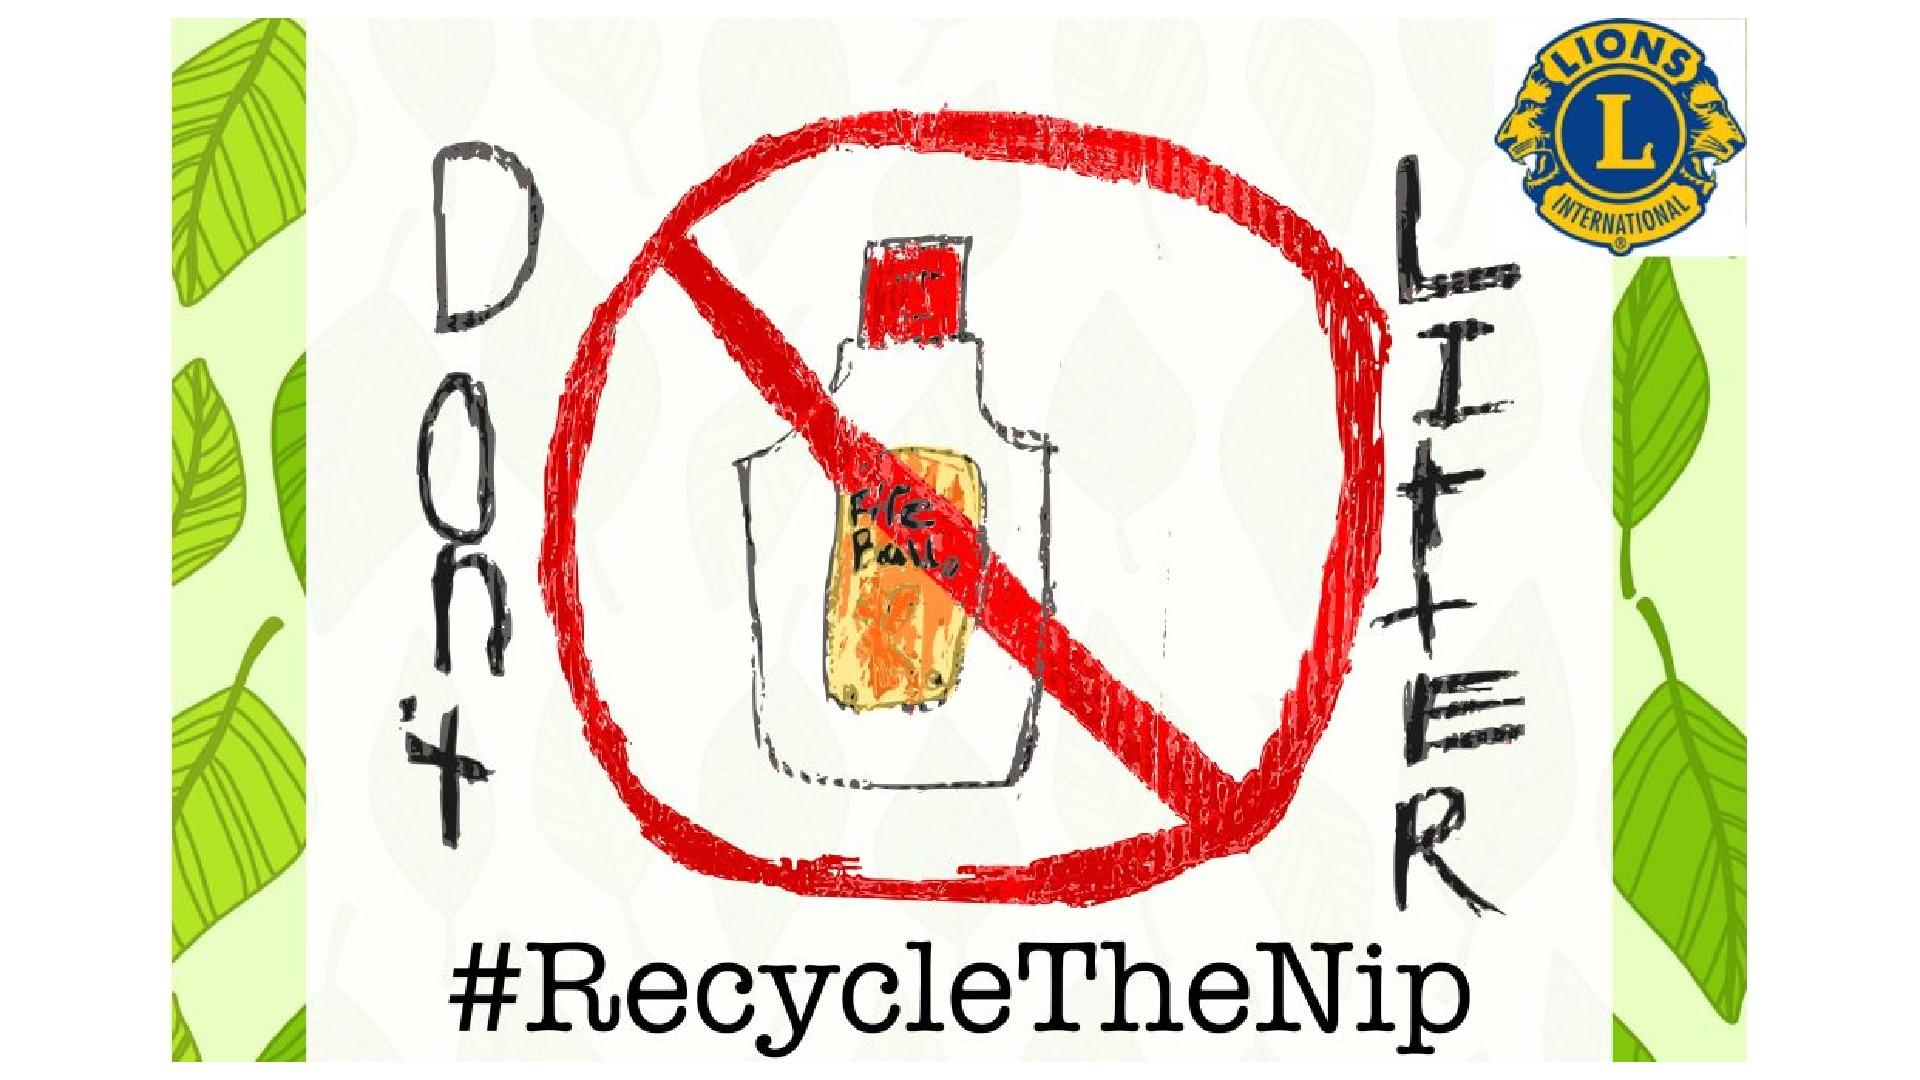 Pioneer Valley Lions Recycle The Nip Project